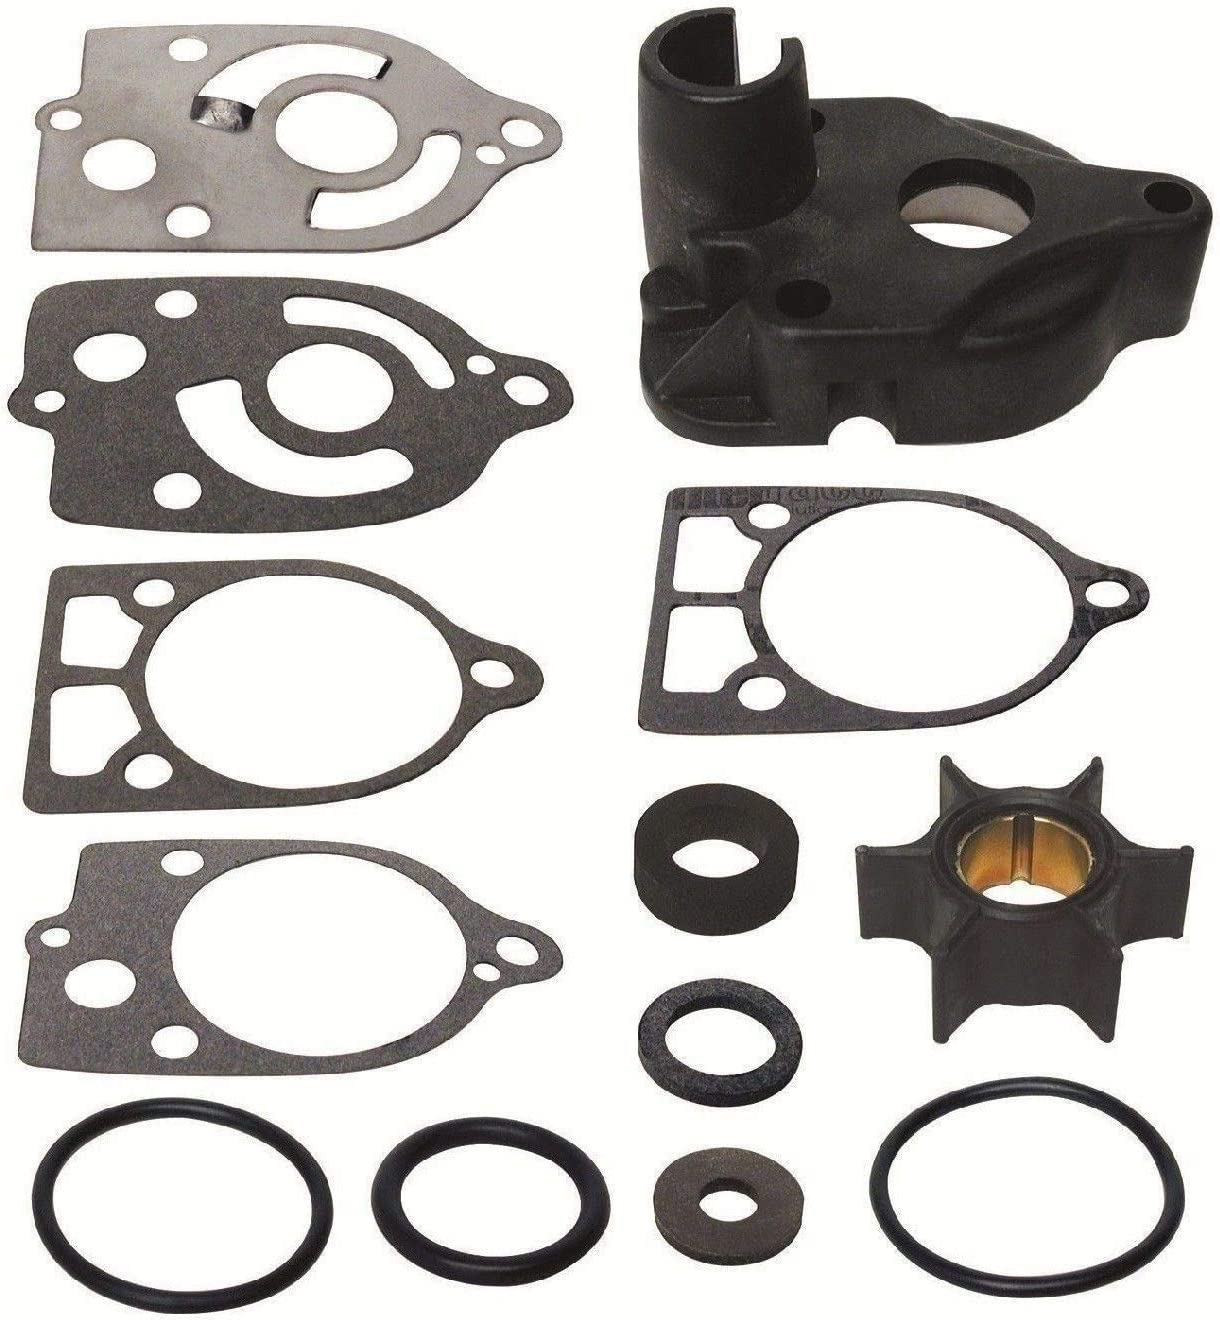 GLM Water Pump Impeller Kit for Mercury 35, 40, 45, 50, 60, 65, 70 hp, Replaces 46-60366A1, 18-3507 Please Read Product Description for Exact Applications